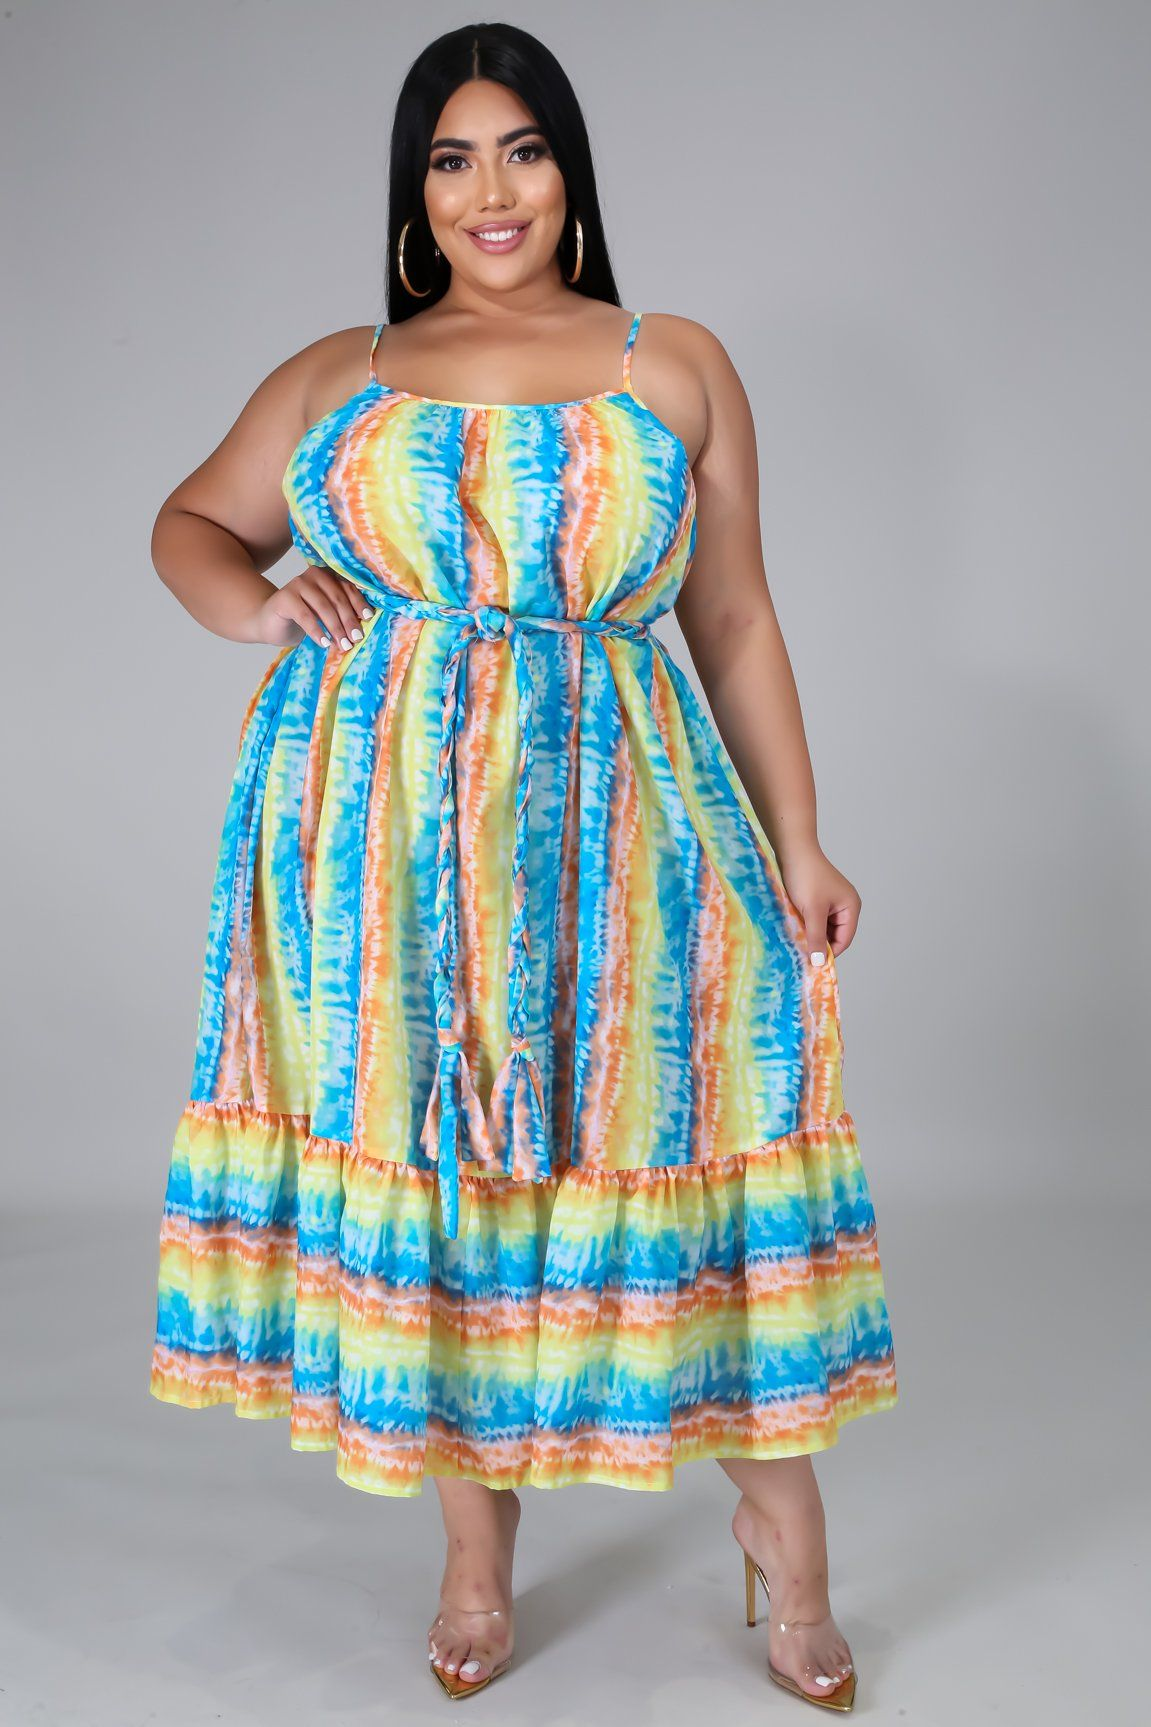 Dyeing Of Happiness Dress Plus Size Summer Dresses Dresses Summer Dress Outfits [ 1727 x 1151 Pixel ]